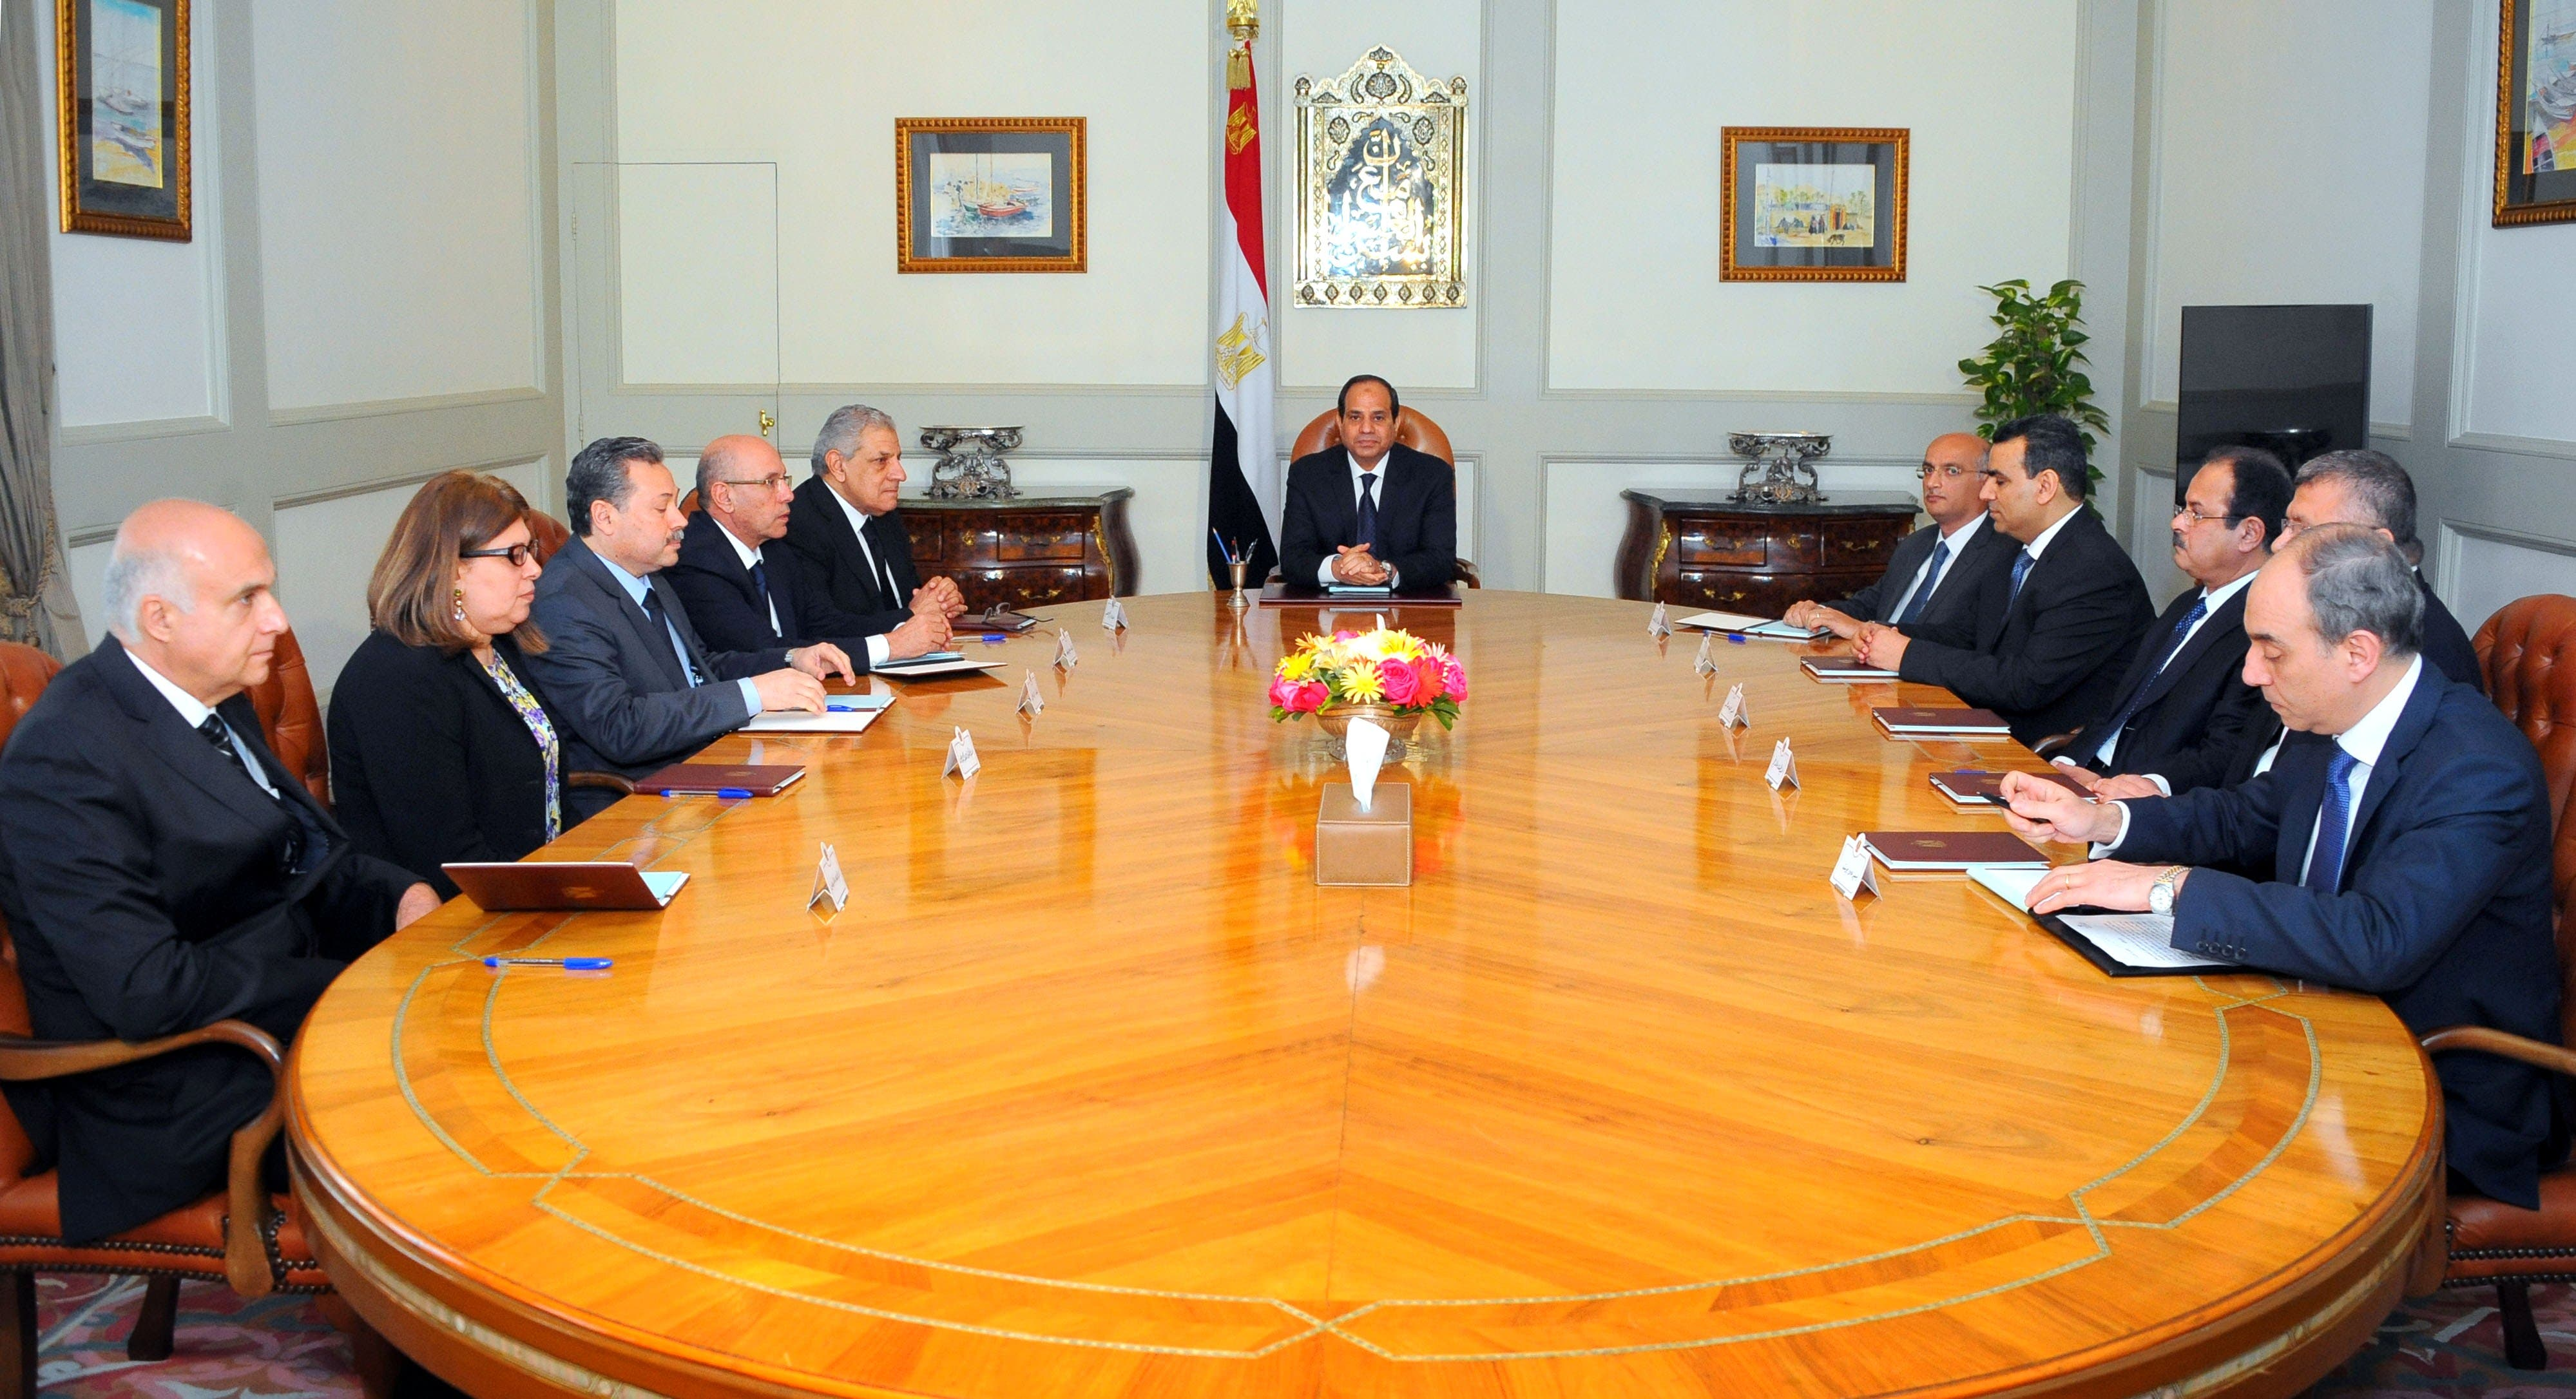 Egypt replaces interior minister in cabinet reshuffle - Al Arabiya ...